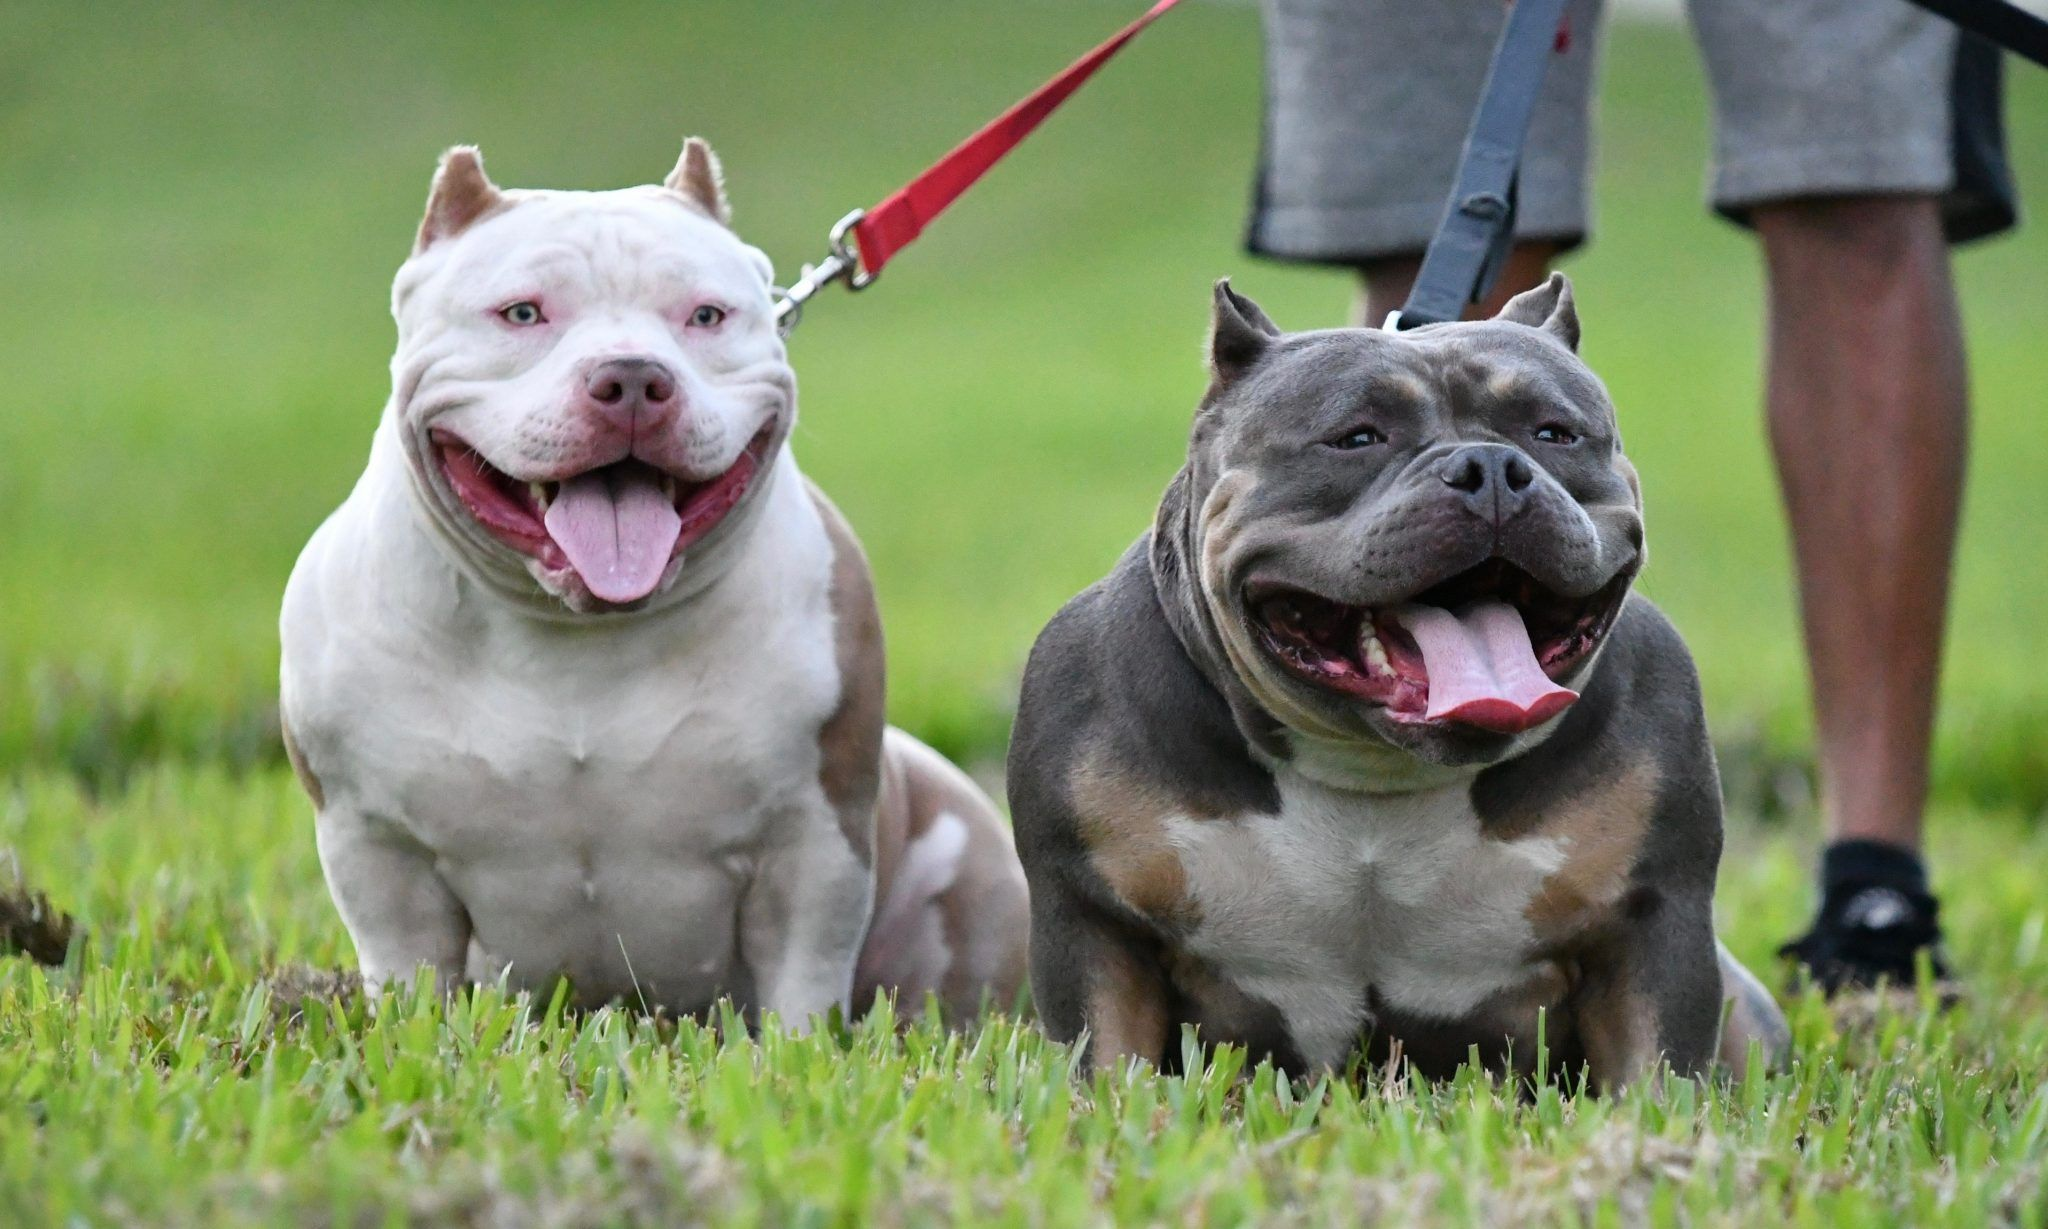 Top American Bully Import Line Pick Of The Week American Bully Showline Puppies For Sale In India Yo American Bully Puppies For Sale American Bully Classic